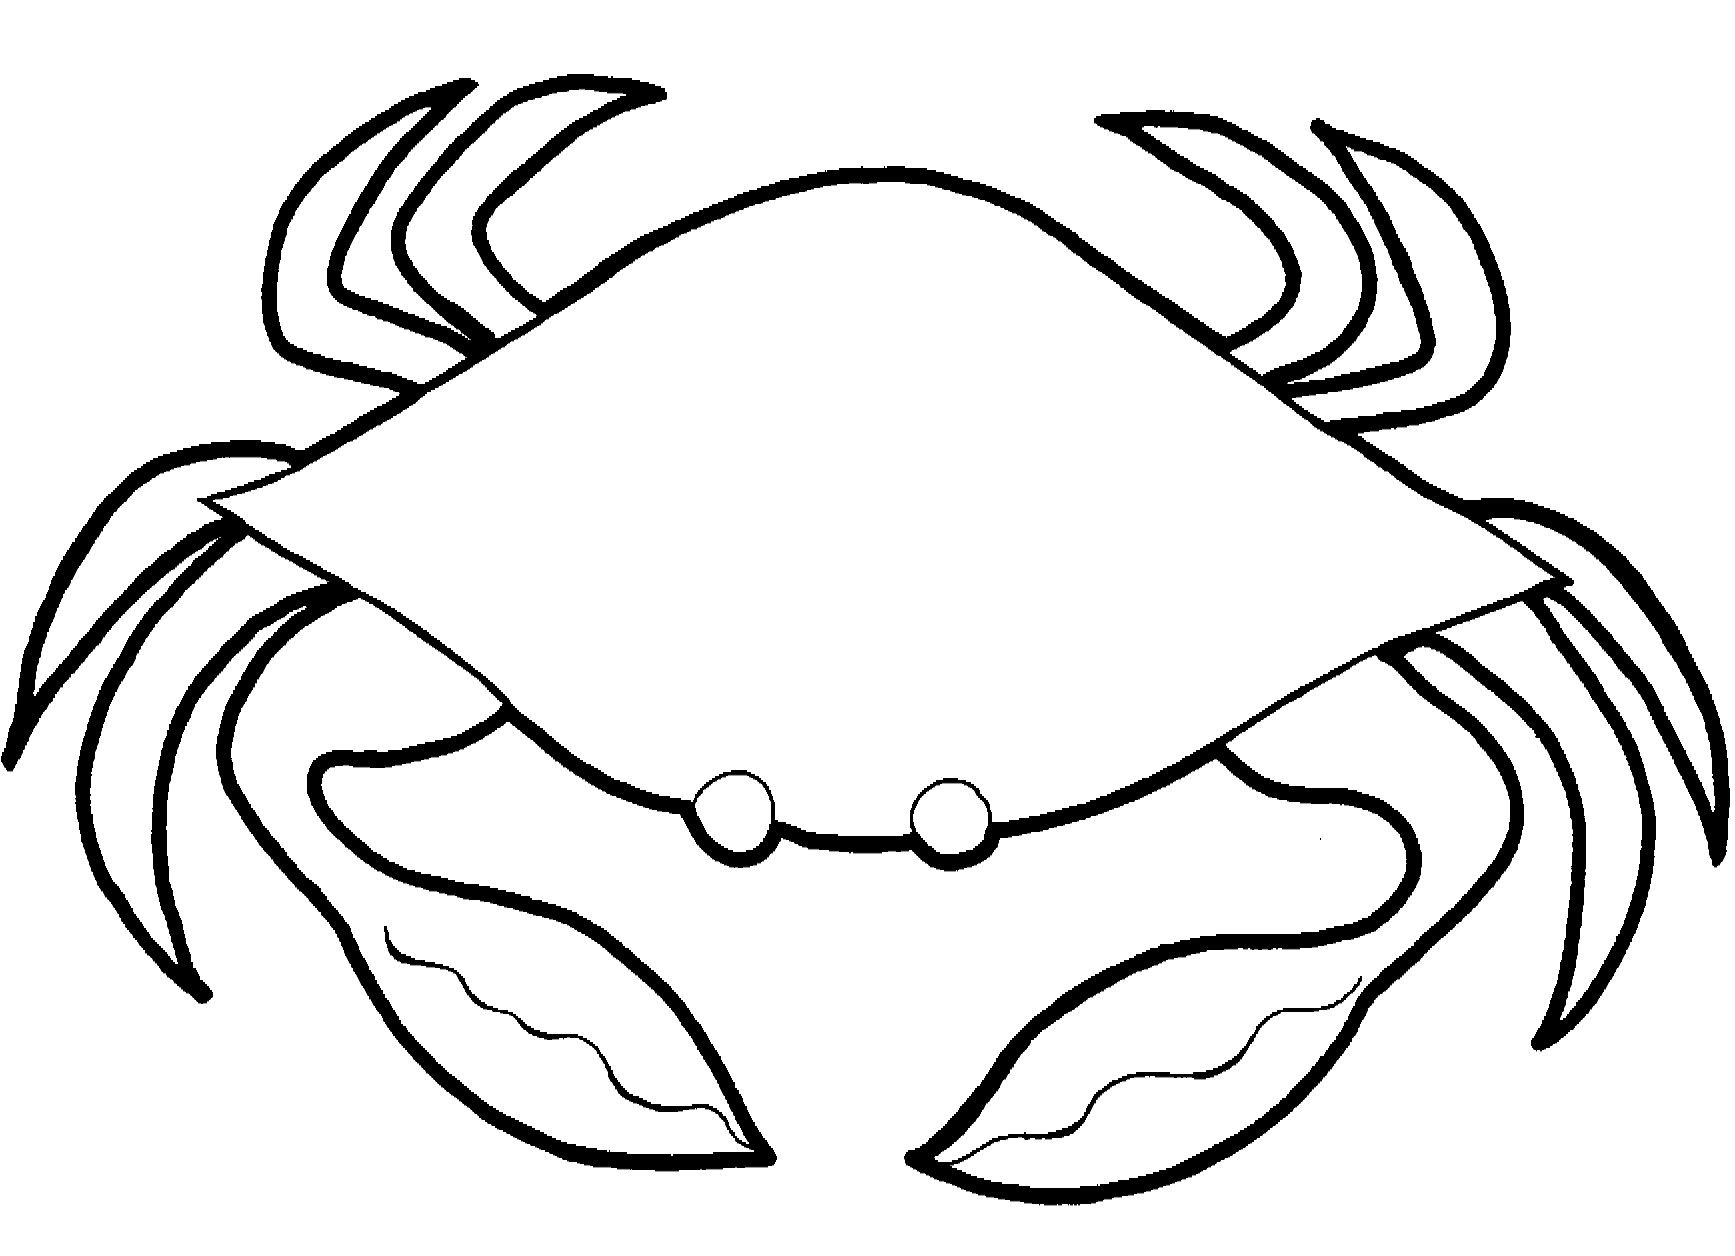 crab coloring pages free printable coloring pages simple c - Print Colouring Sheets